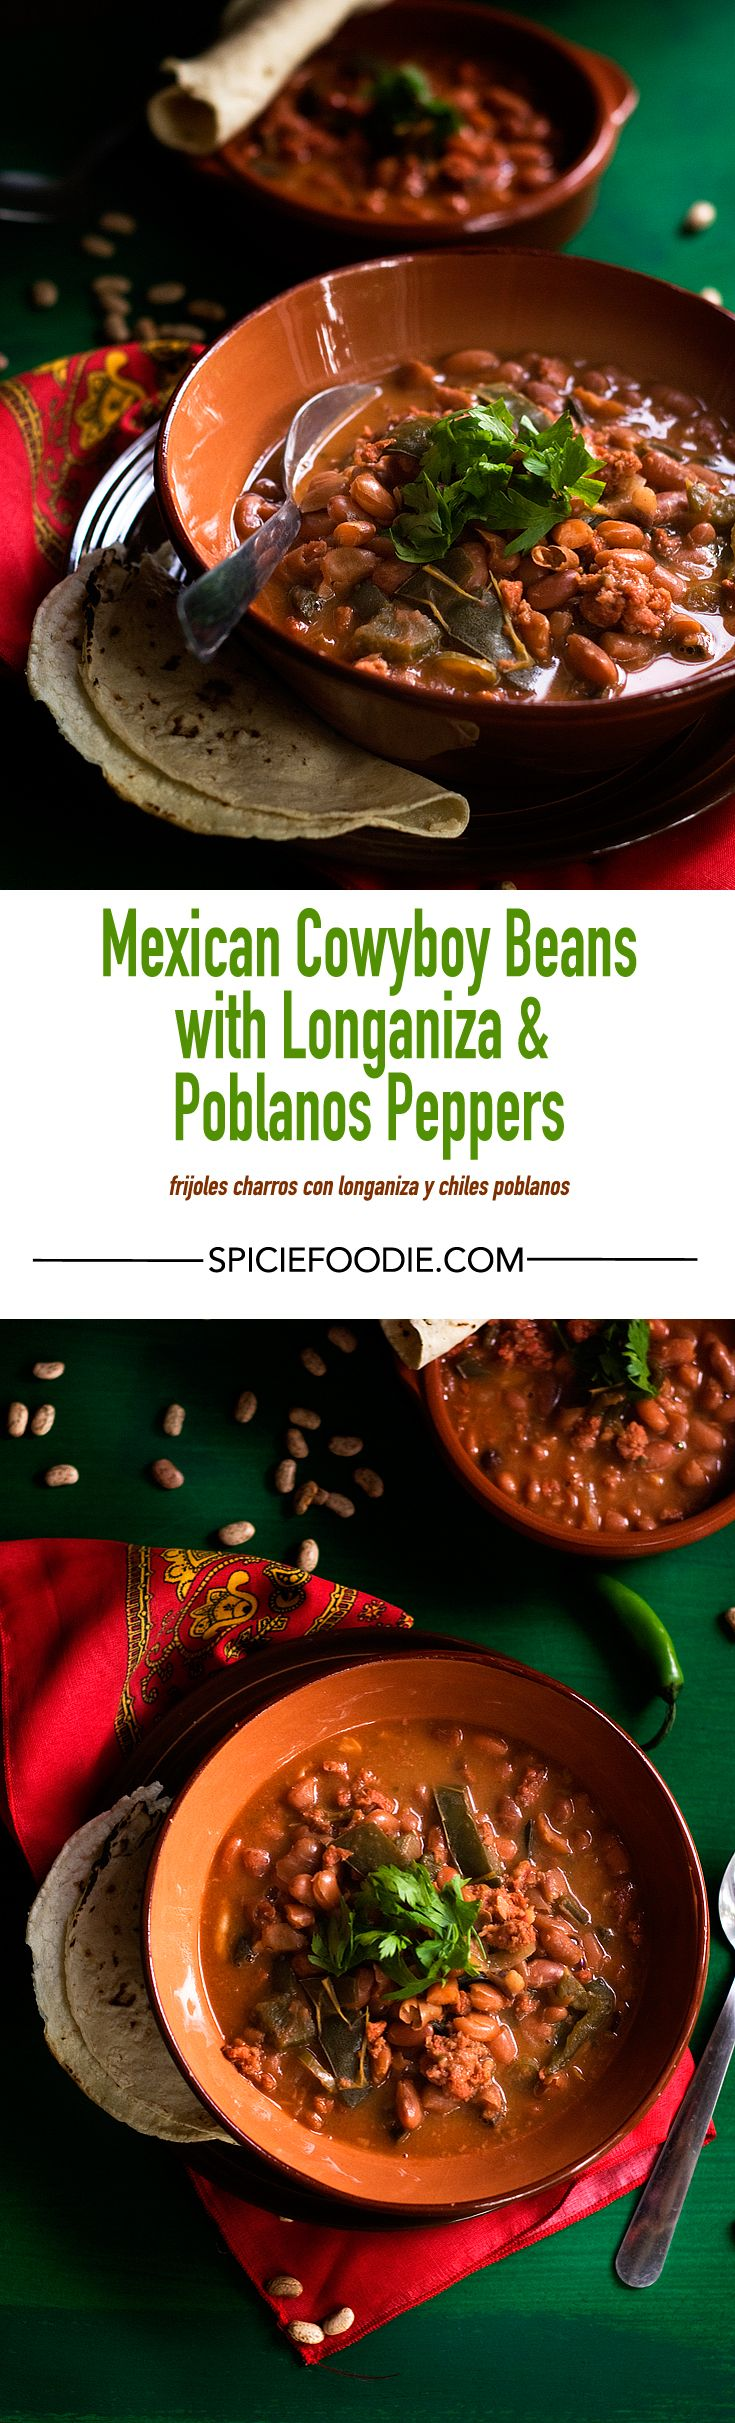 Mexican Cowboy Beans with Longaniza and poblano peppers